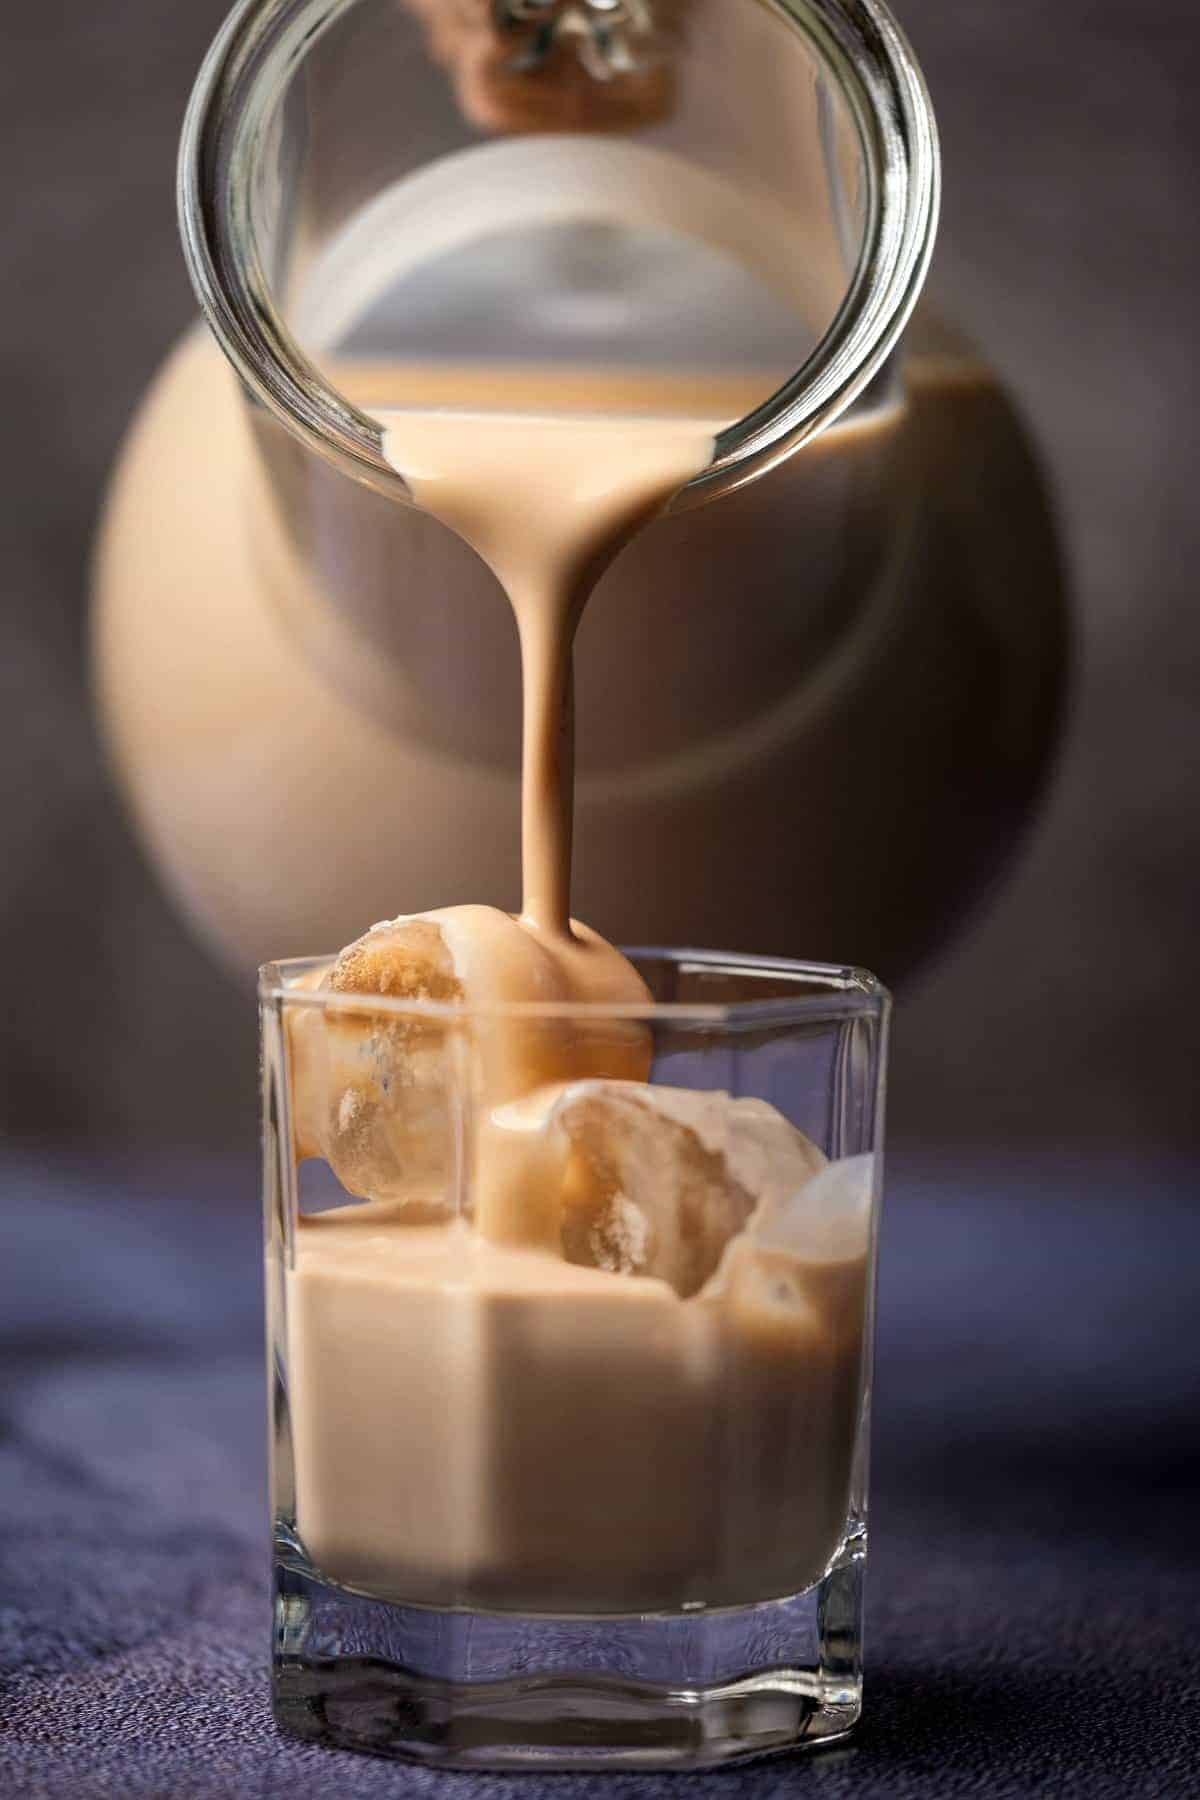 A glass jug pouring homemade Irish Cream into a glass with ice.